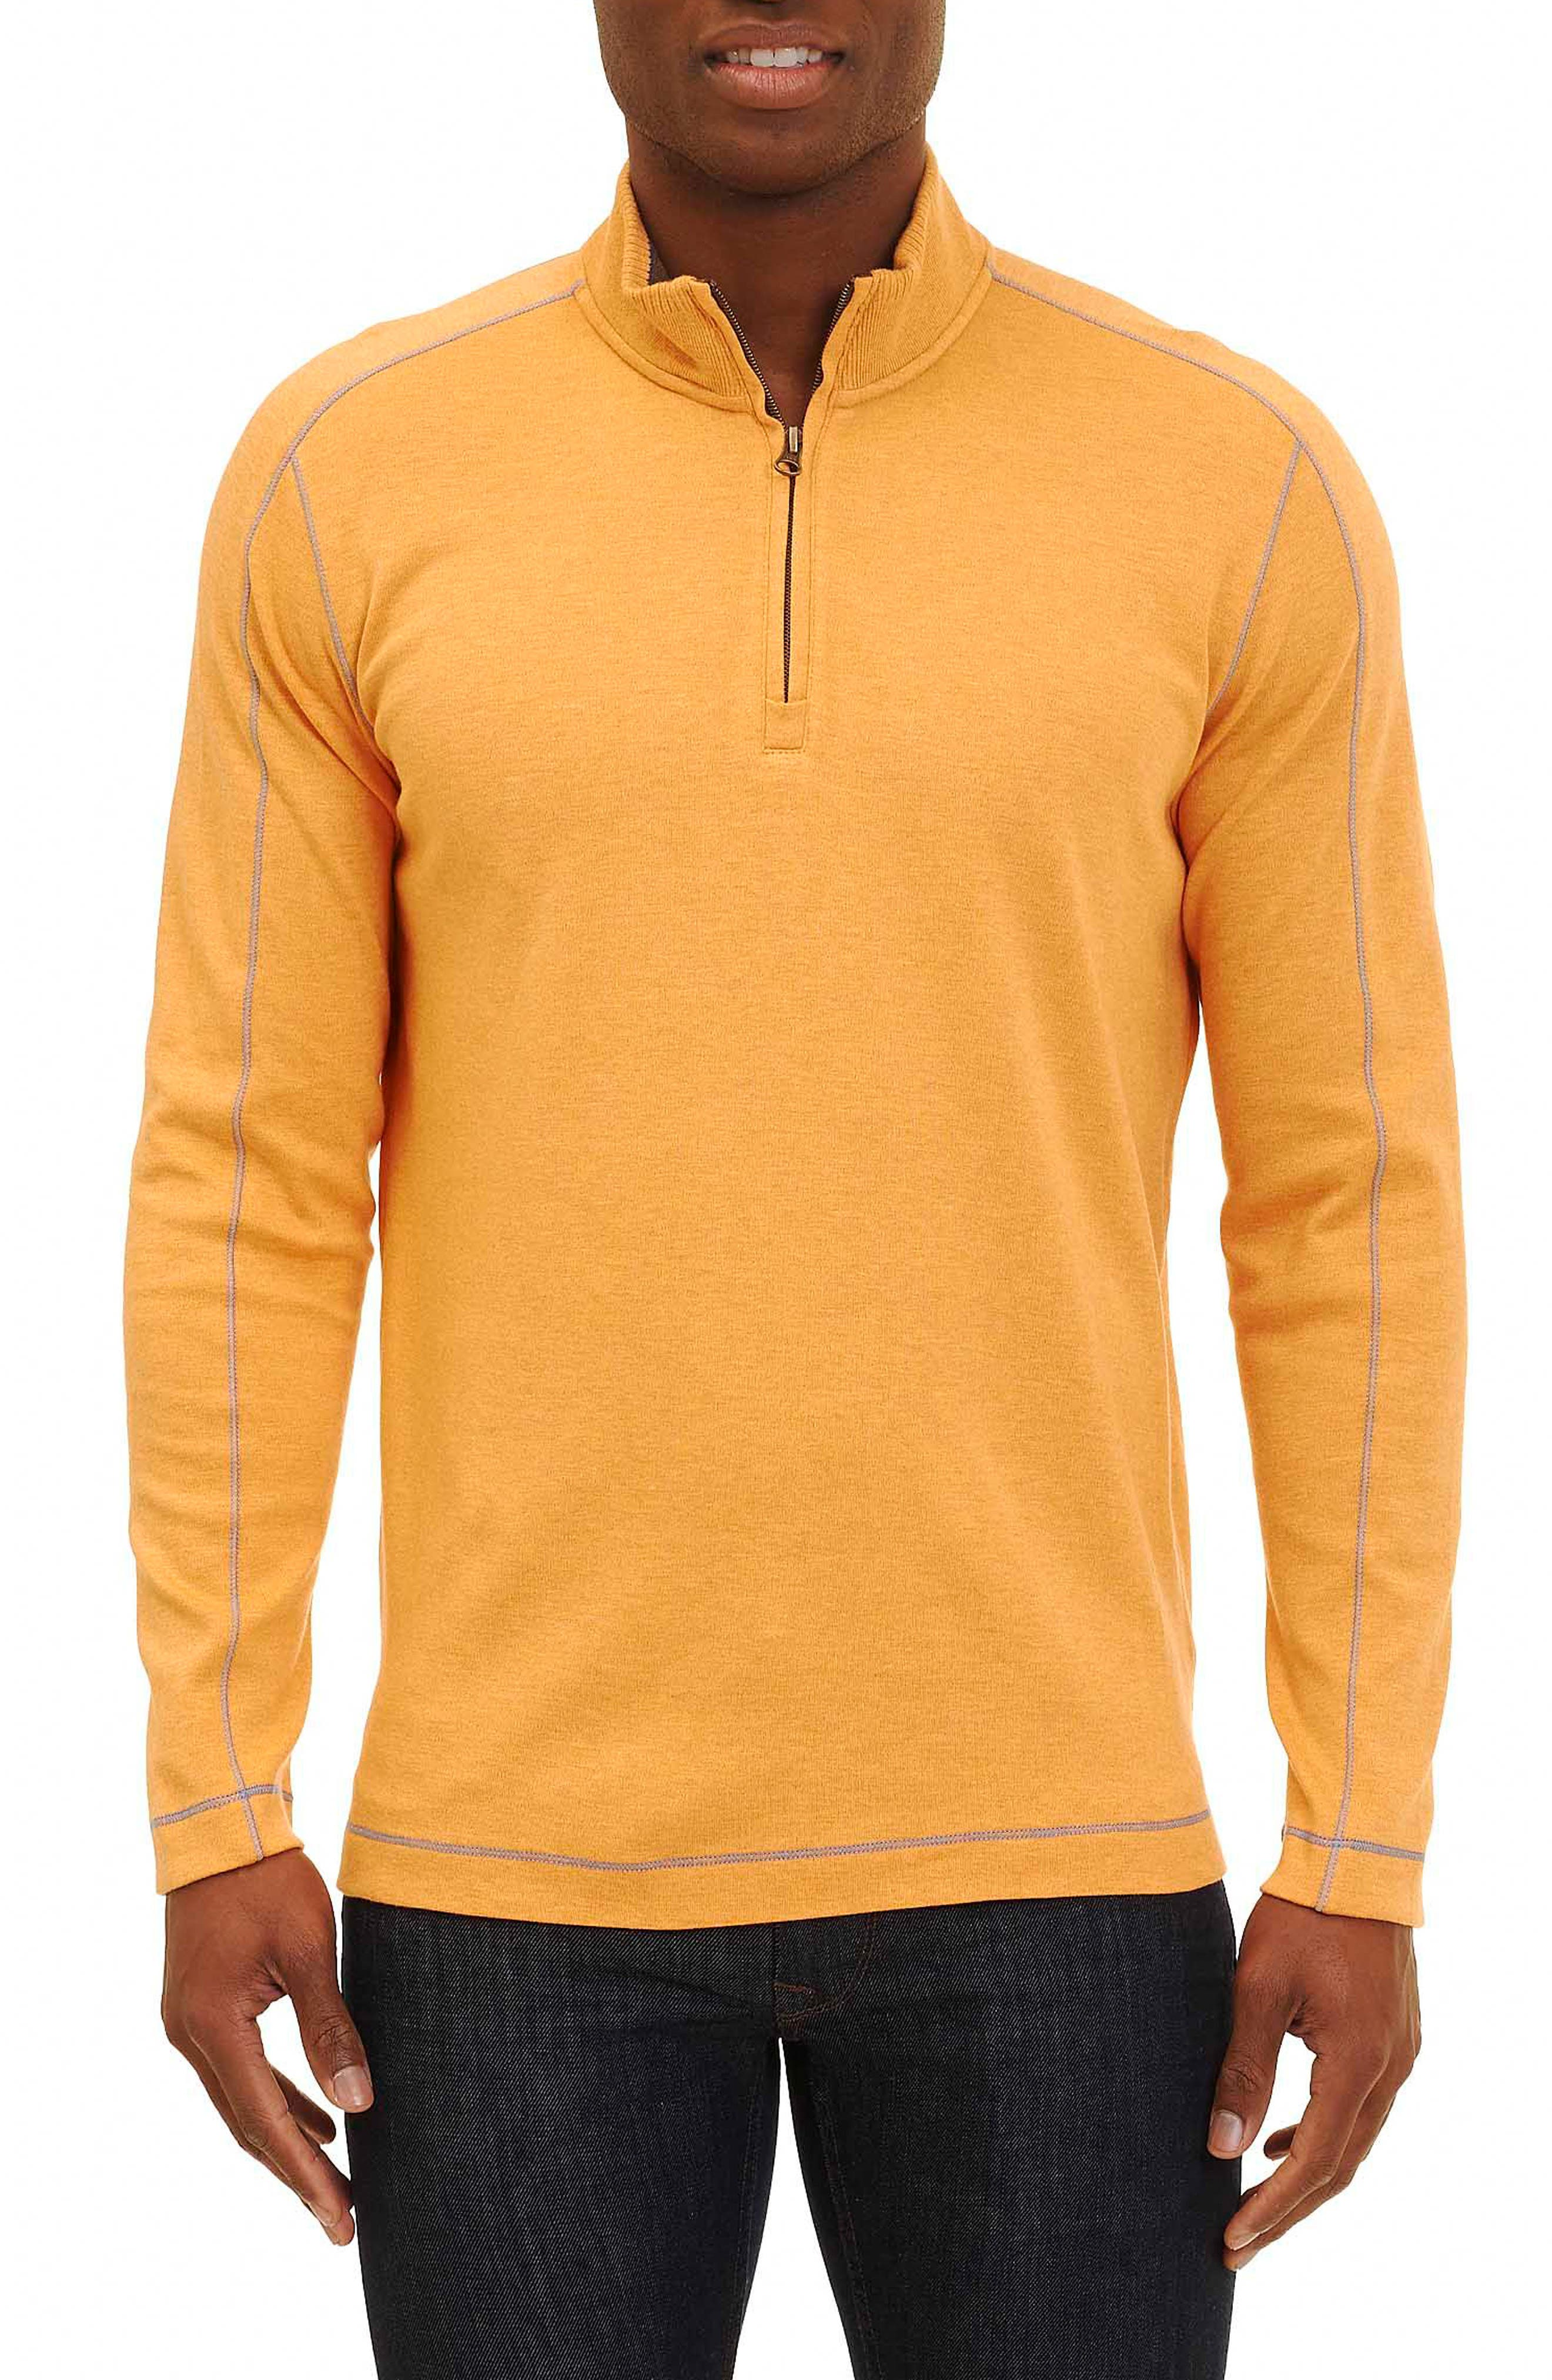 Robert Graham 'Elia' Regular Fit Quarter Zip Pullover